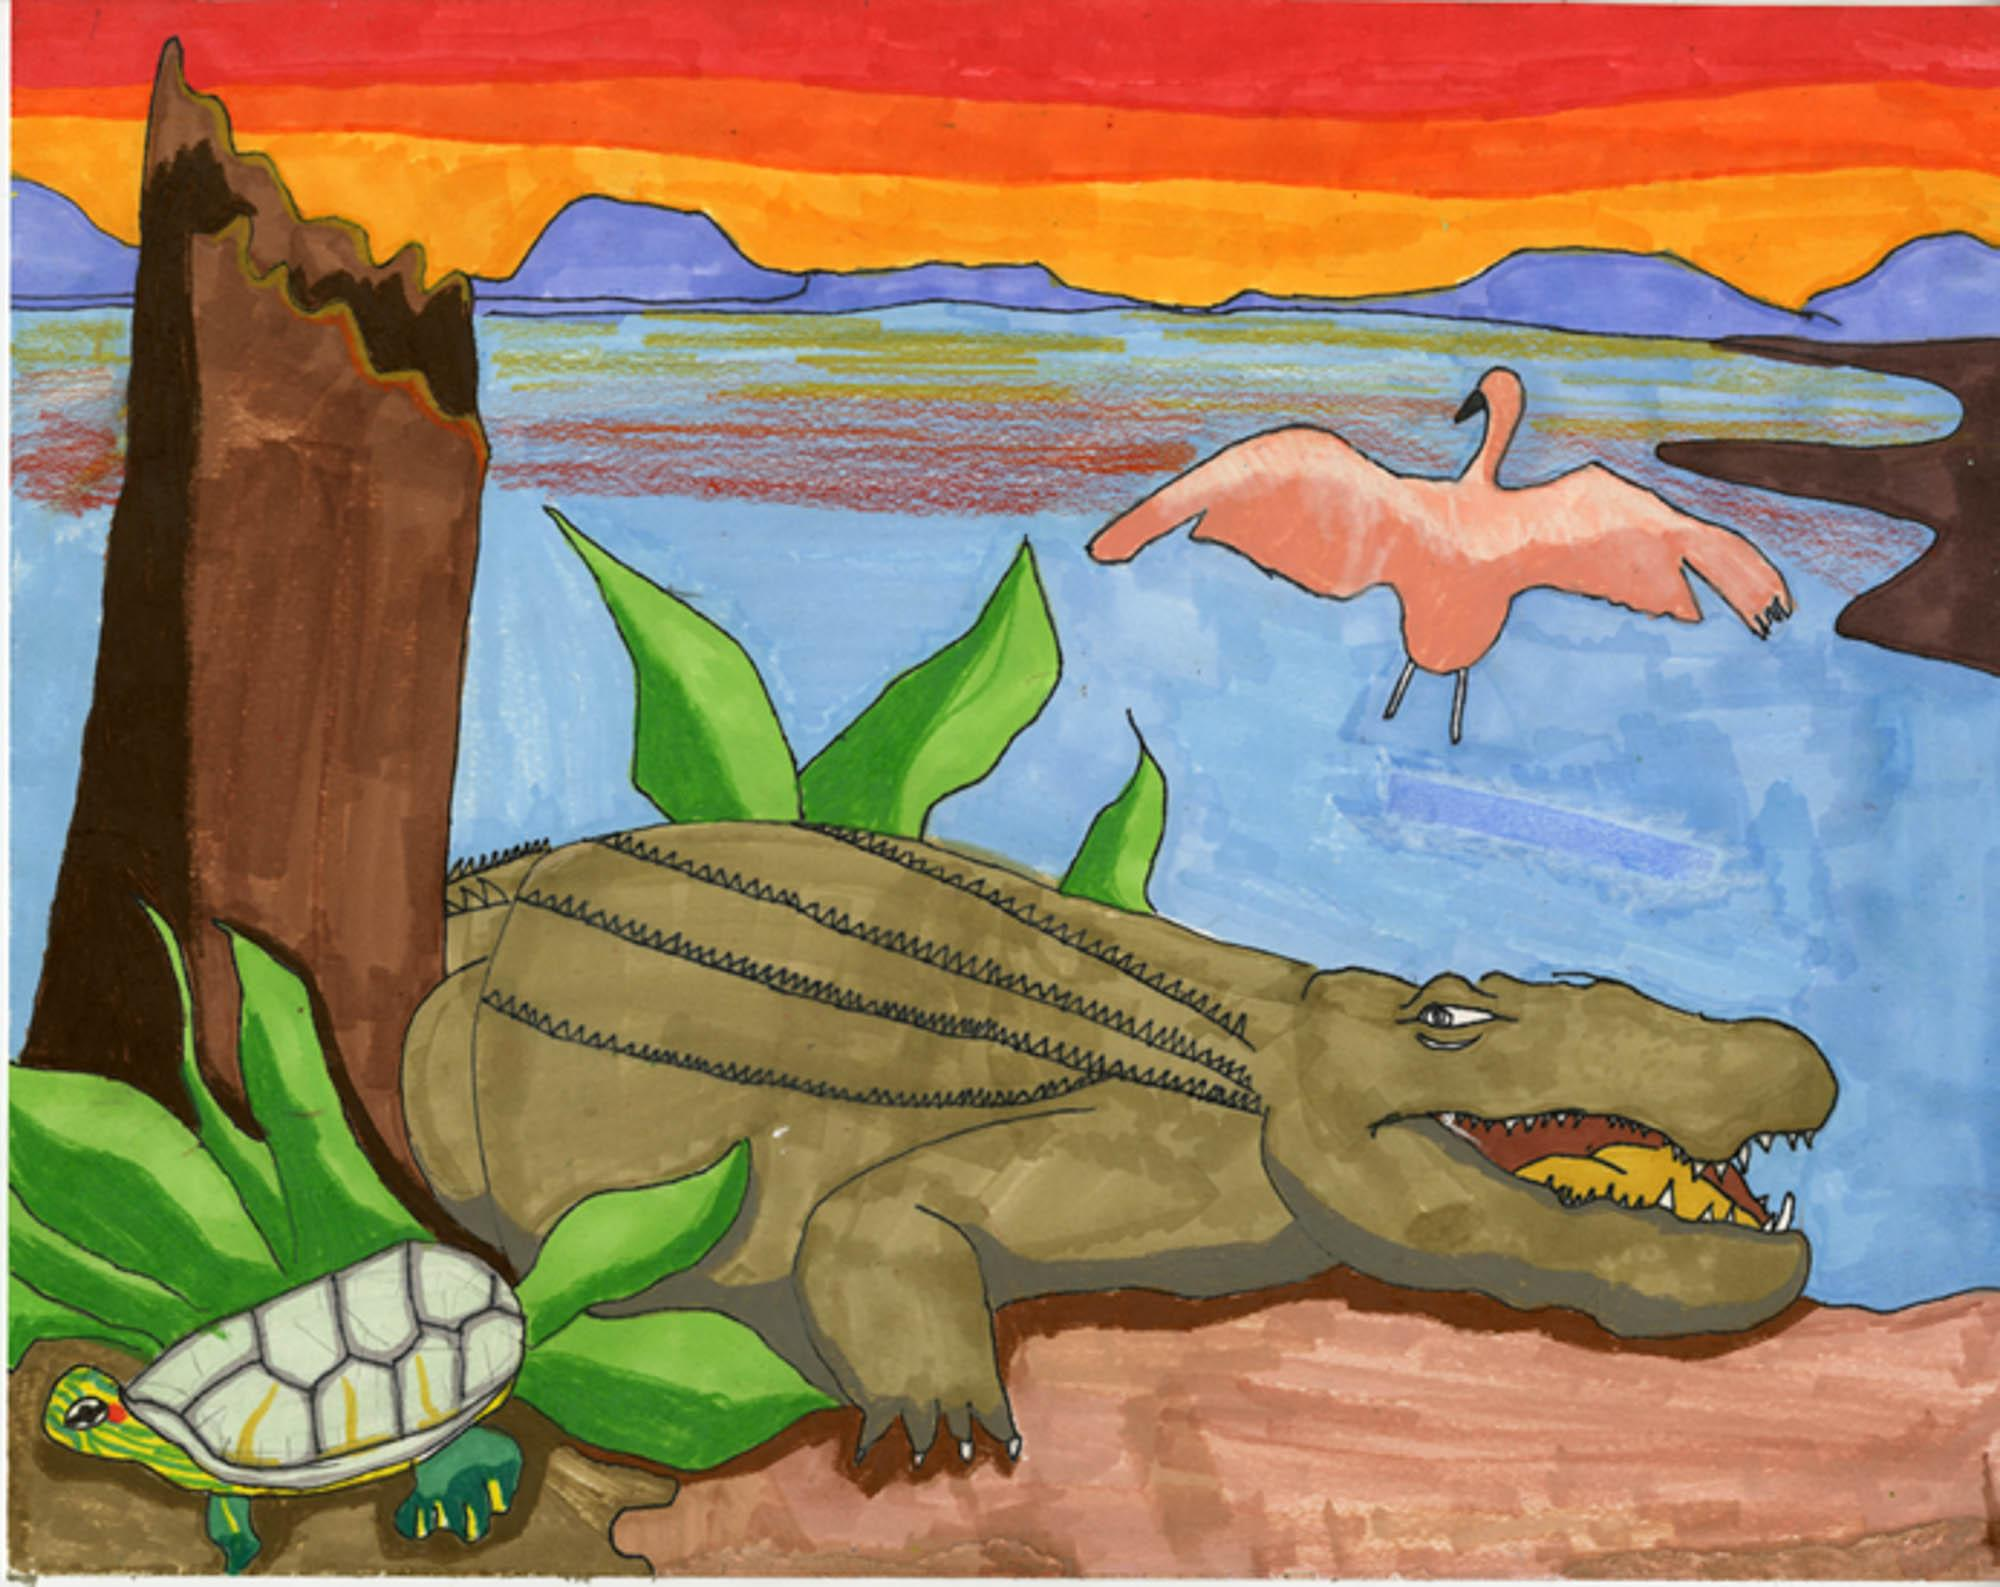 Animal Safari, Brian Koh, age 9 Duluth, Georgia Ska Academy of Art and Design  Teacher: Leng Chang, 2013 River of Words Finalist